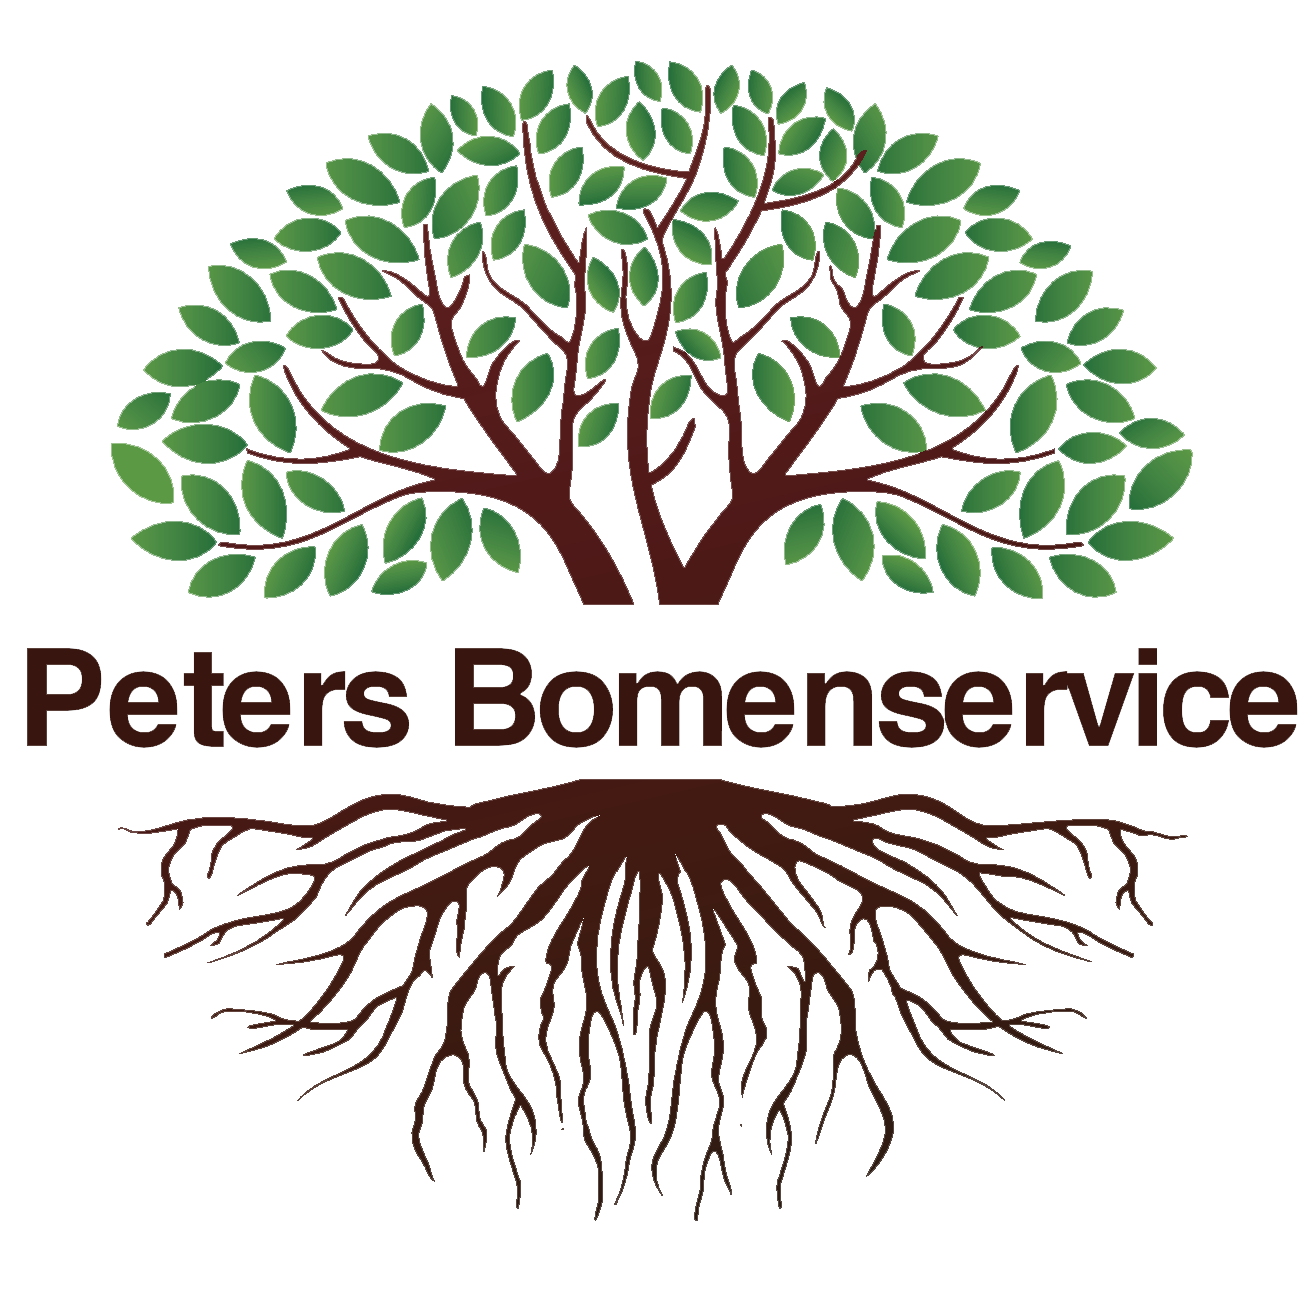 Peters Bomenservice